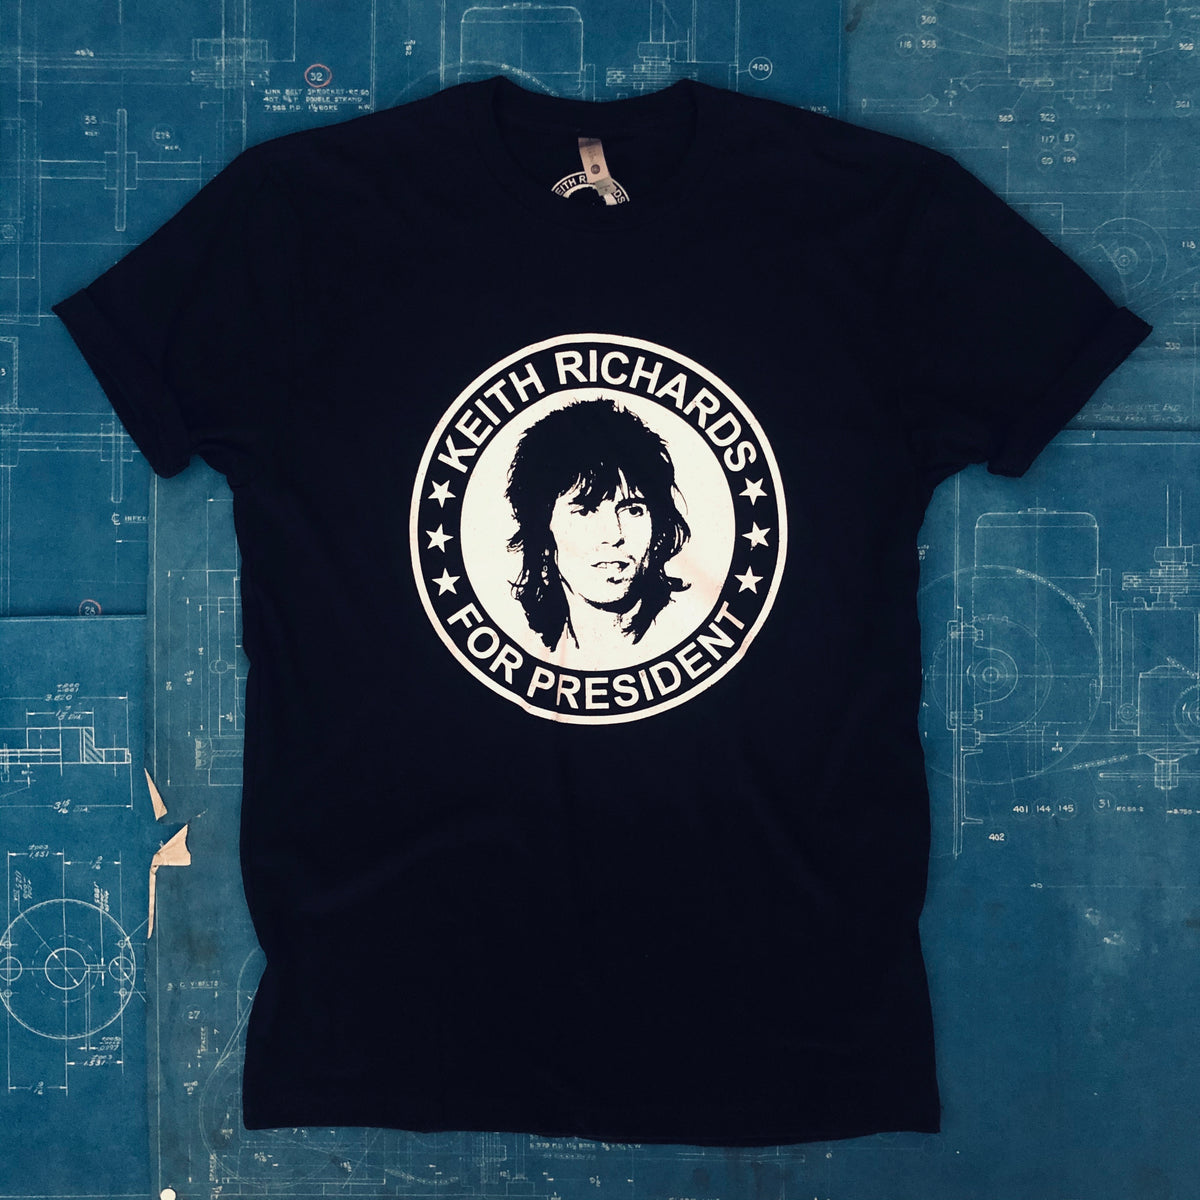 A KEITH RICHARDS FOR PRESIDENT TSY T-SHIRT, BLACK